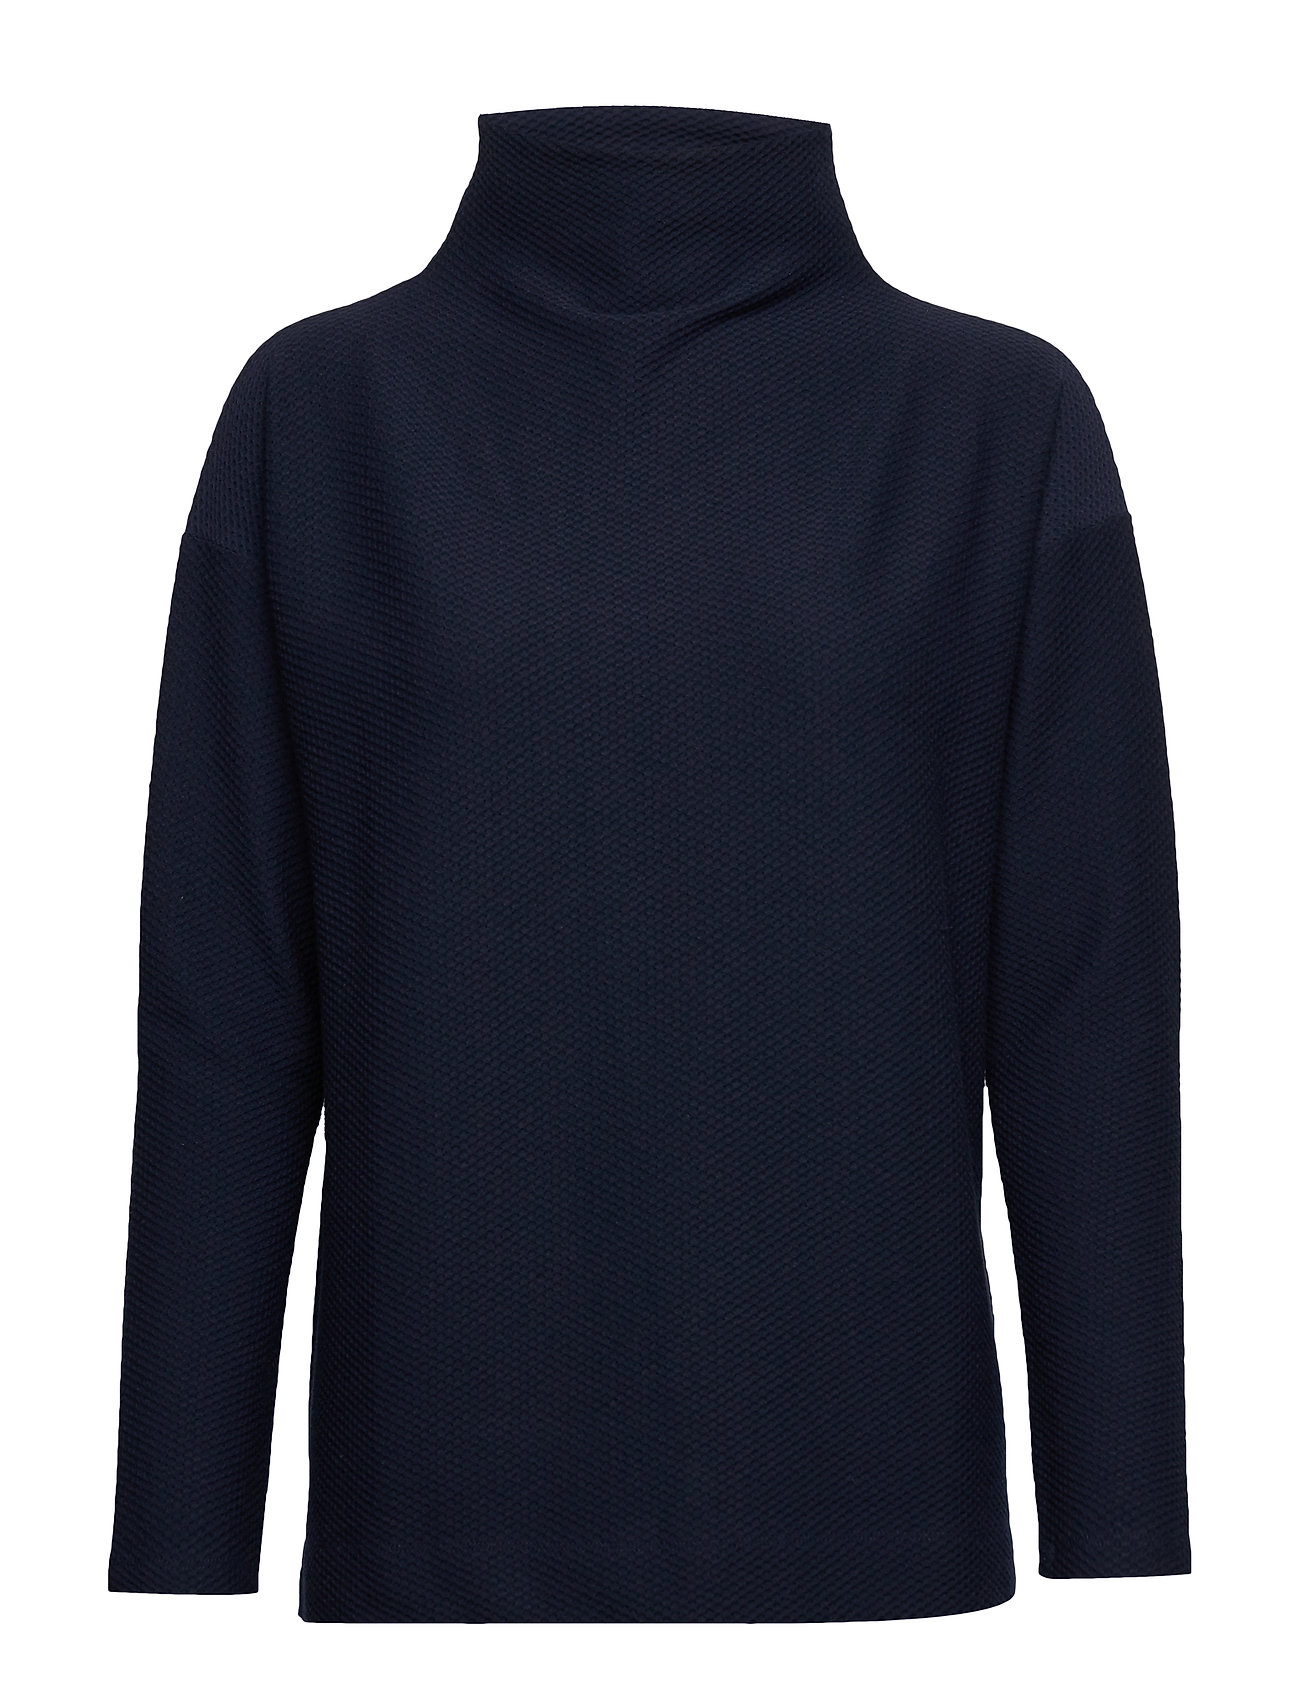 Kaffe KAbeth Blouse - MIDNIGHT MARINE